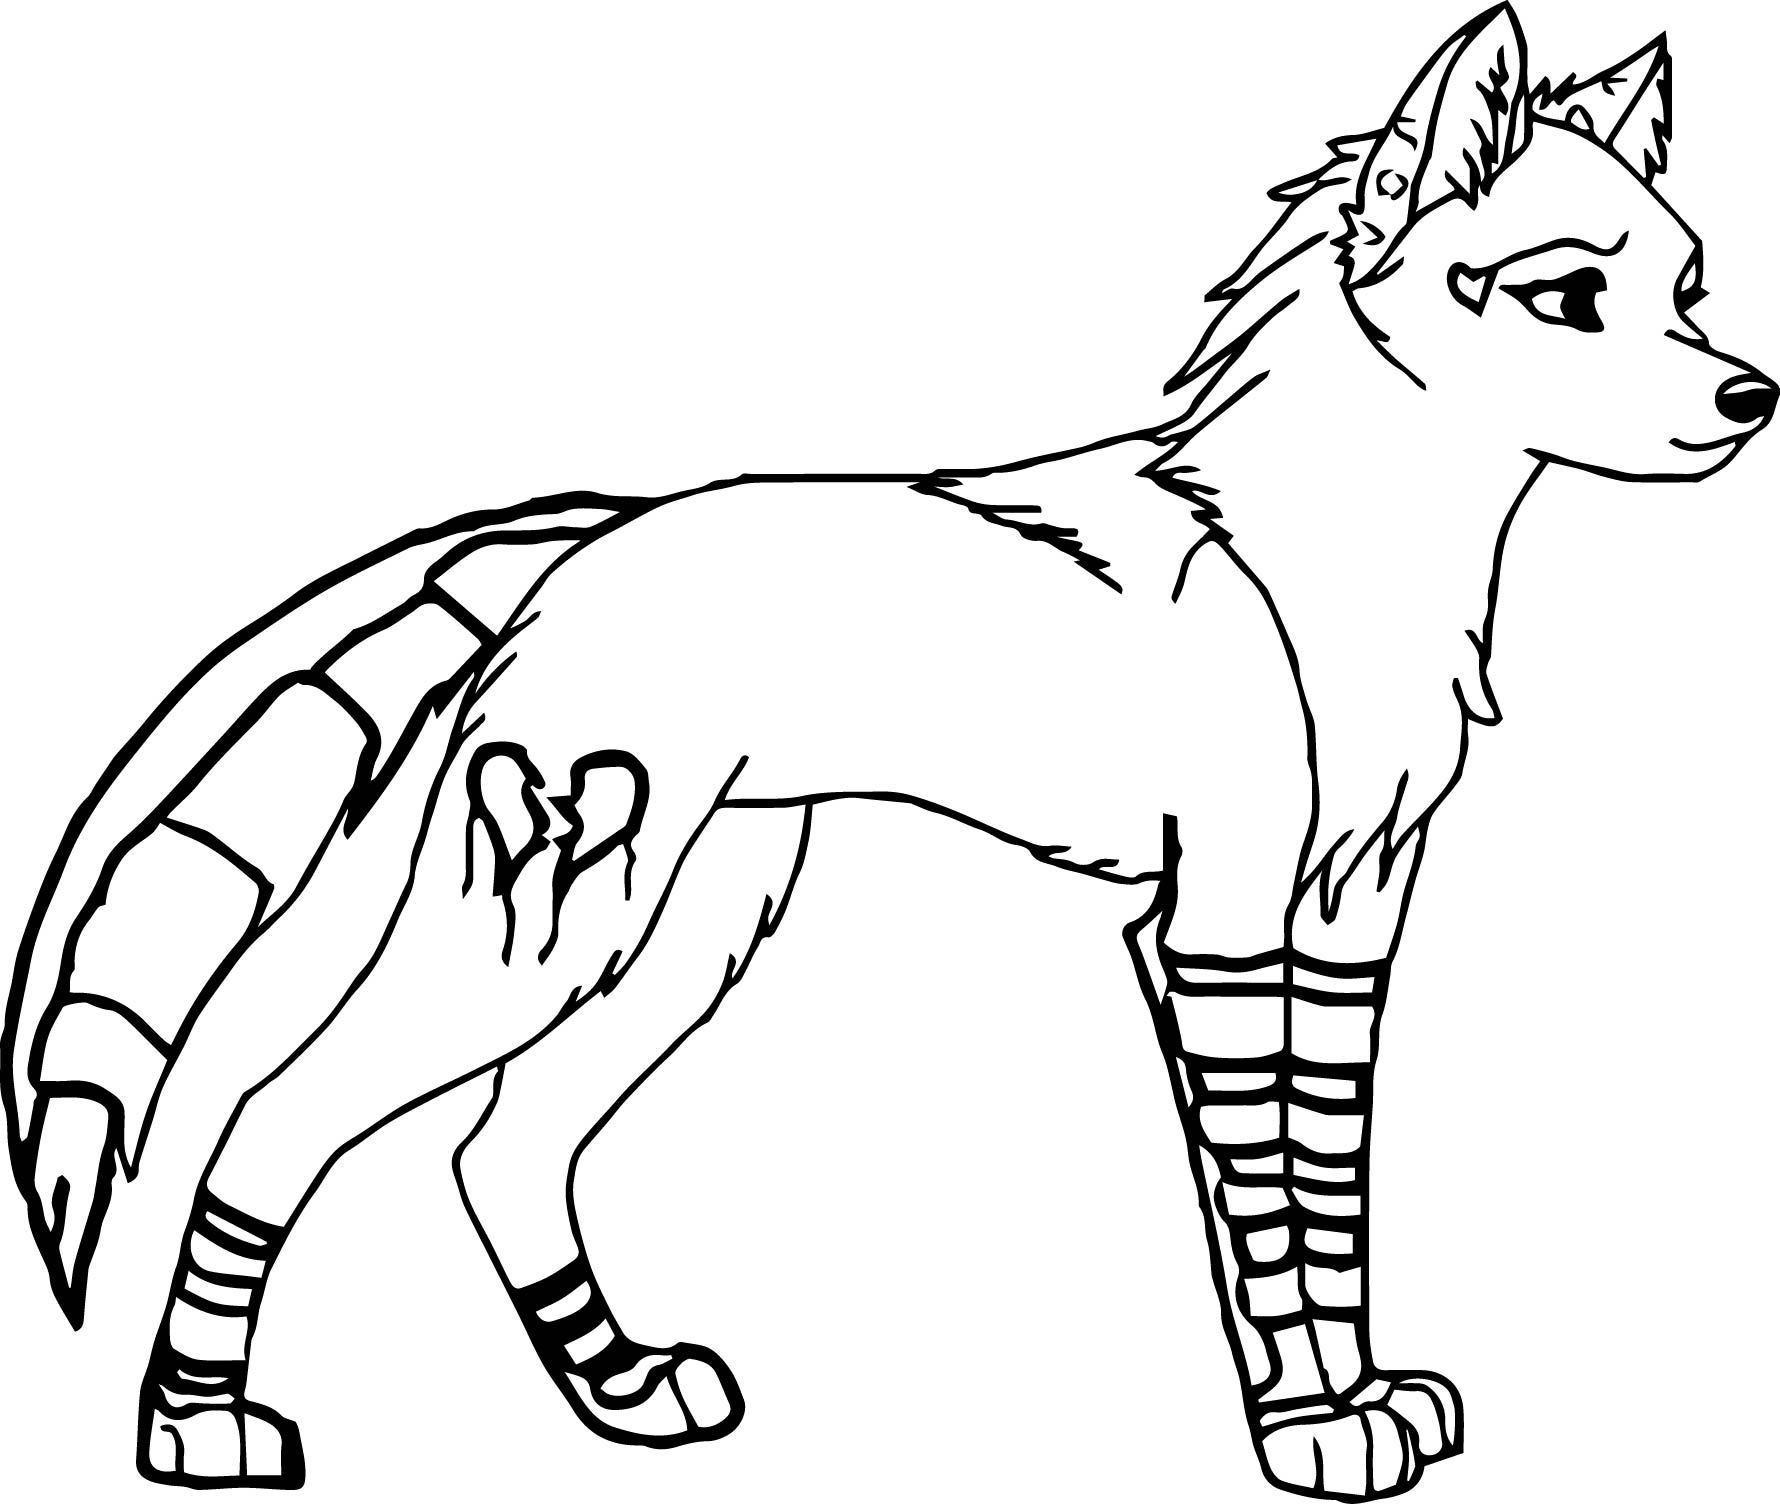 Wolves clipart female wolf. Coloring pages wecoloringpage colors